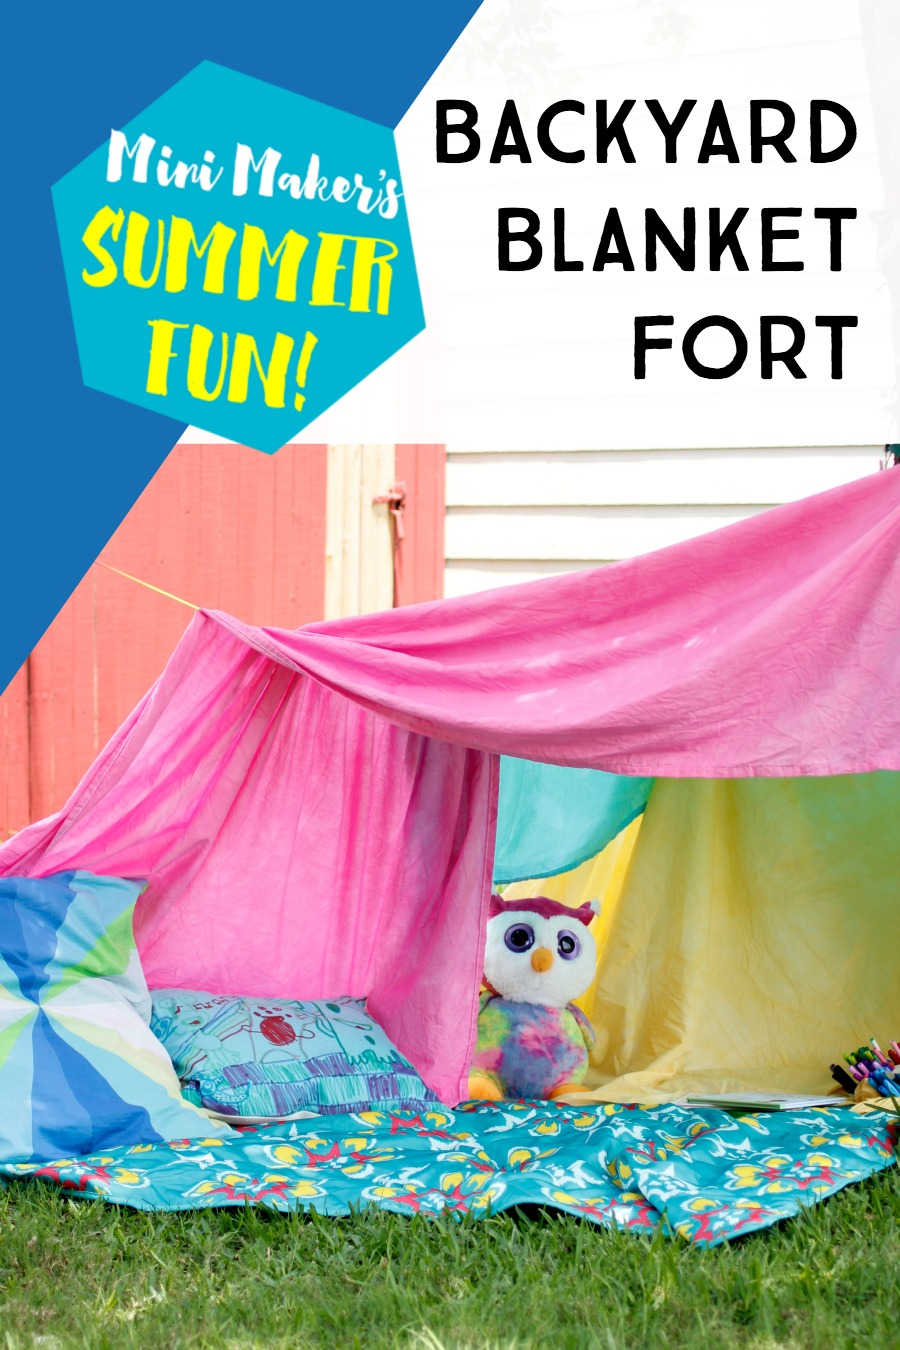 Save your sanity this summer by putting together a blanket fort kit your kids can use over and over again. The only limit is their imagination!